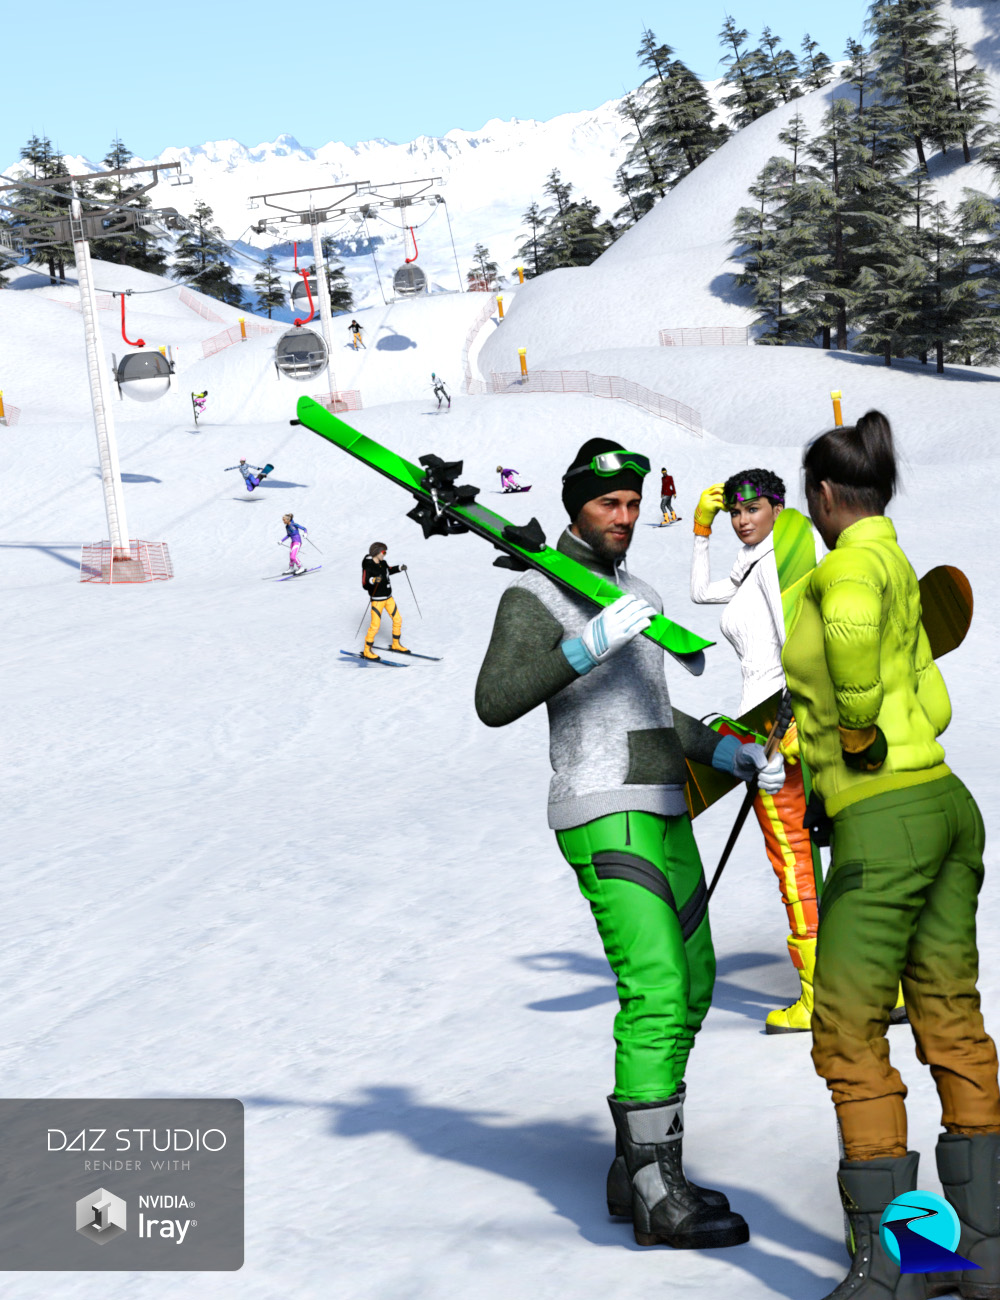 Now-Crowd Billboards - Skiing and Snowboarding (Winter Fun Vol II) by: RiverSoft Art, 3D Models by Daz 3D